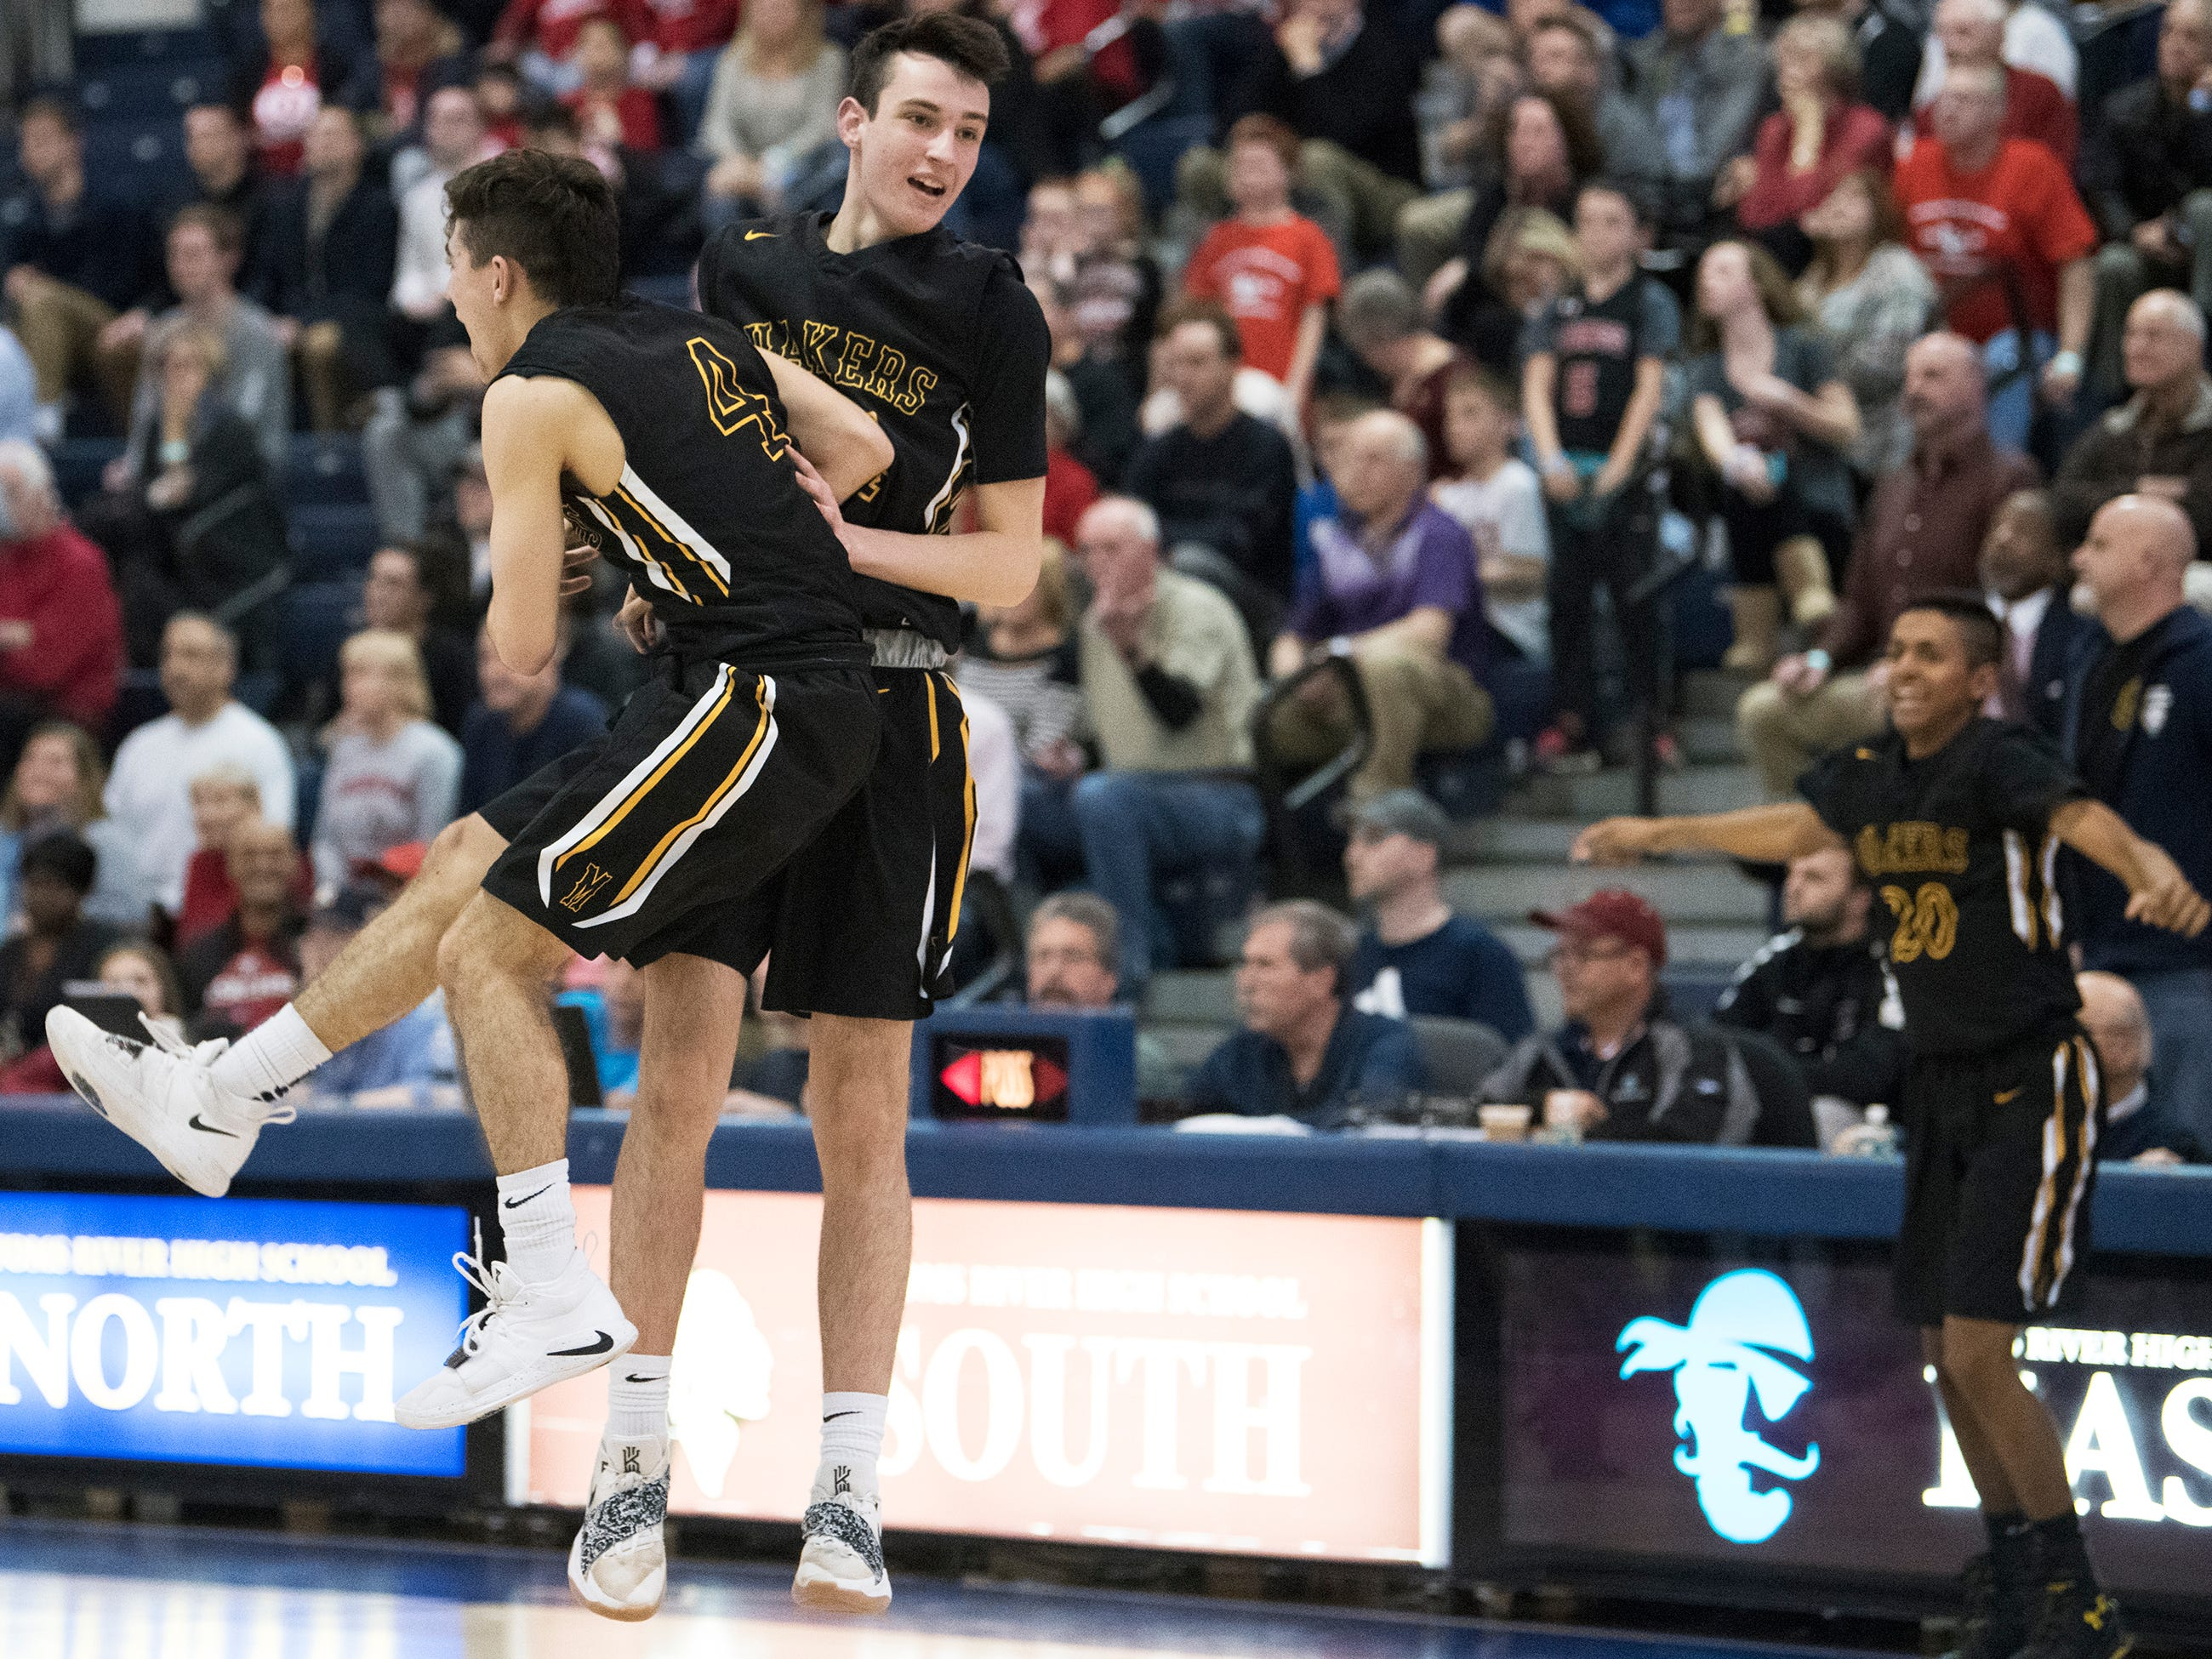 Moorestown's Jagger Zrada, left, celebrates with teammate Evan Francisco after Moorestown defeated Haddonfield, 60-59, during the boys basketball Tournament of Champions quarterfinal game played at Toms River North High School on Wednesday, March 13, 2019.